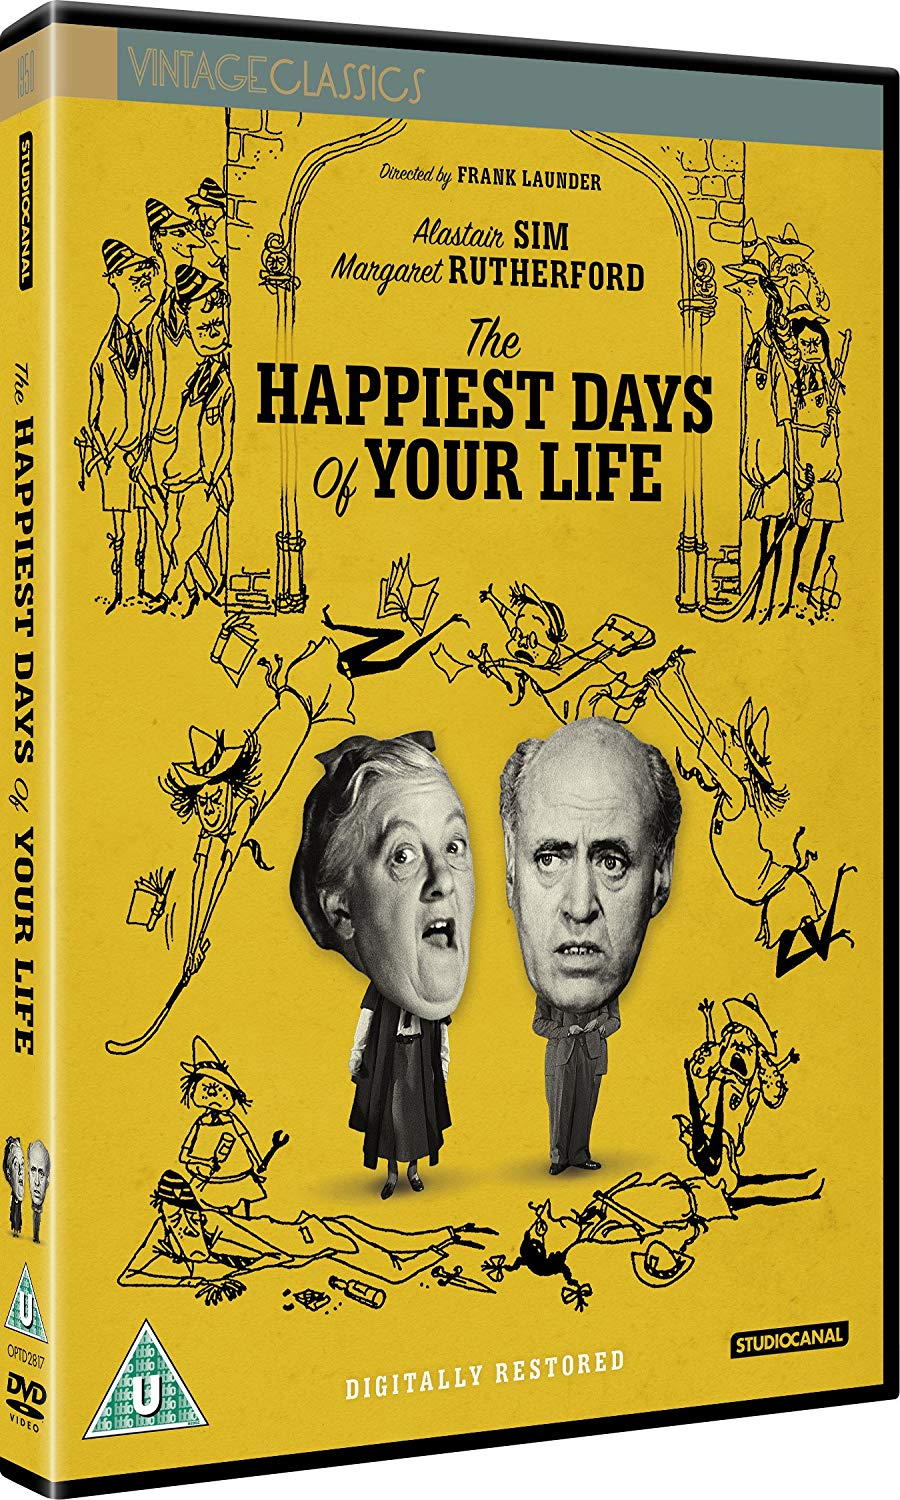 Buy The Happiest Days of Your Life